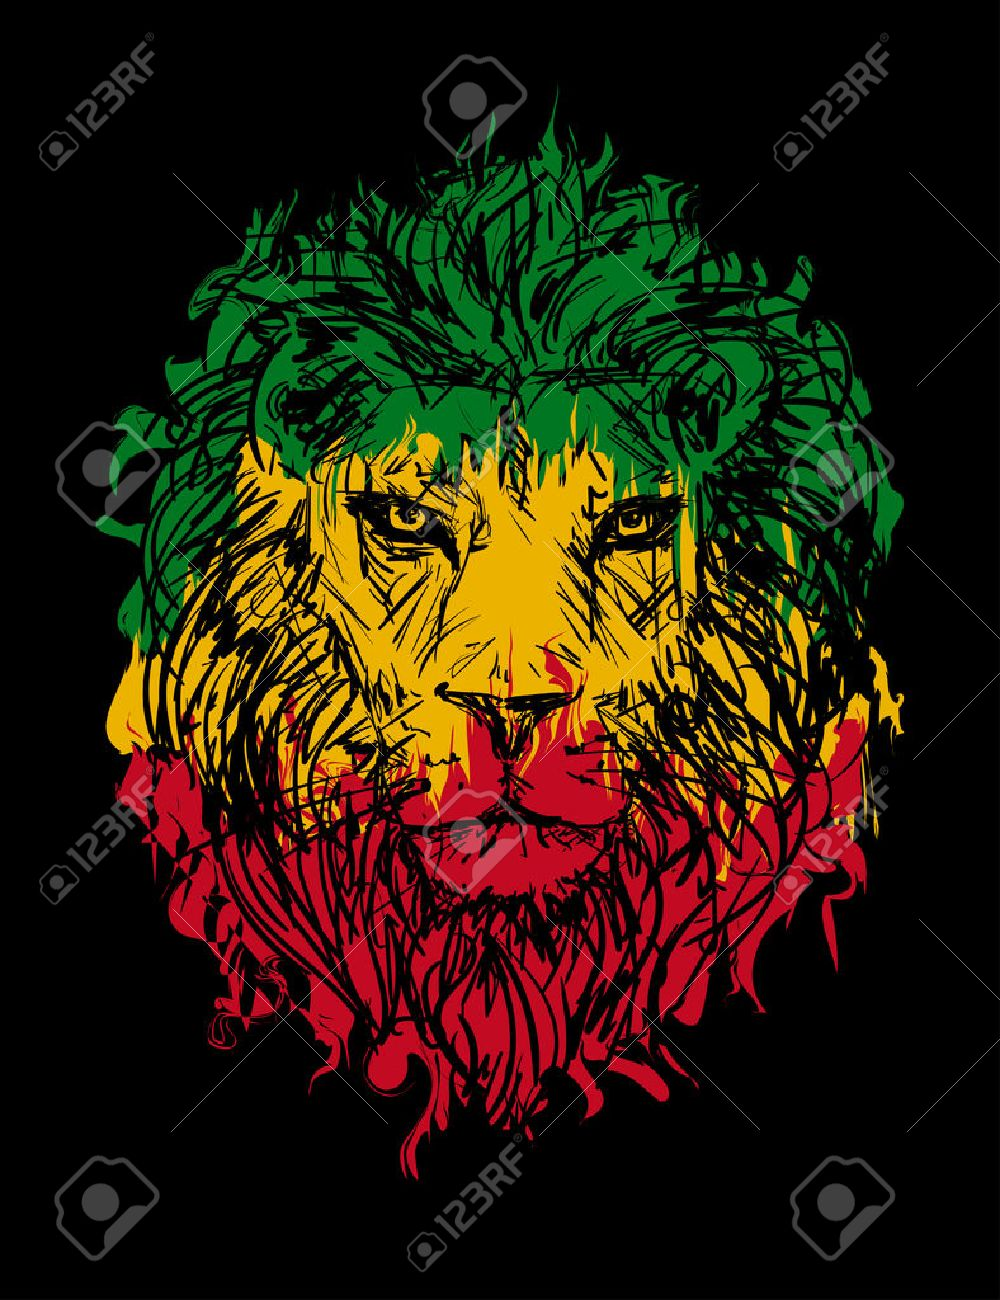 rasta theme with lion head on black background vector illustration